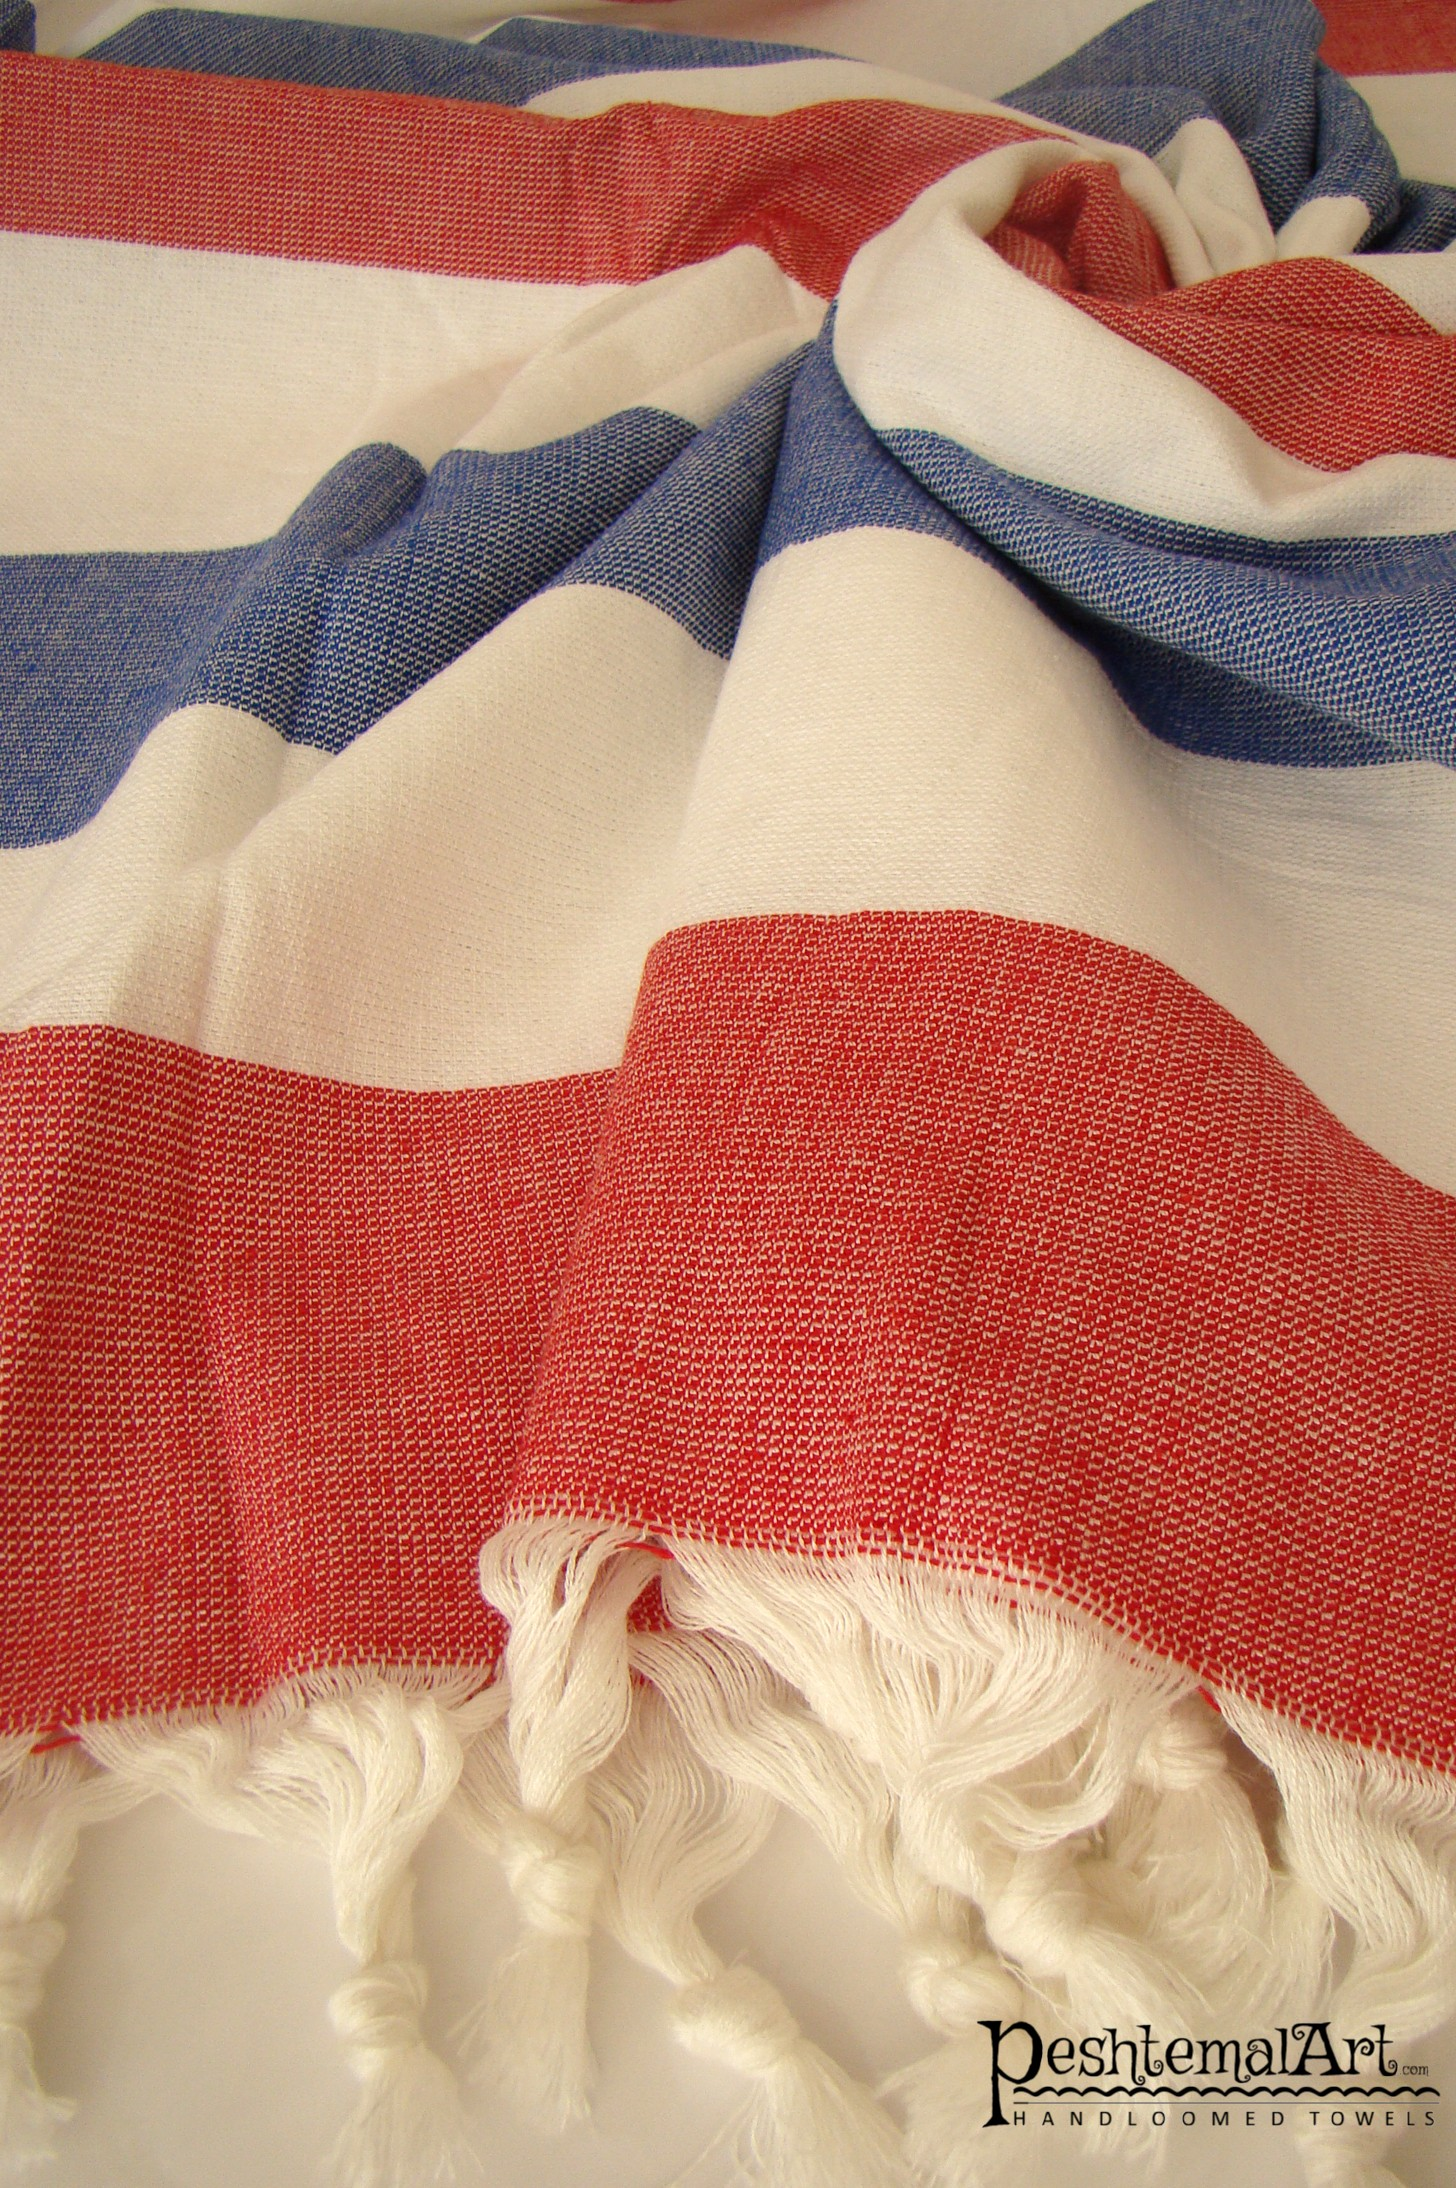 Terry Towel - Red and Blue